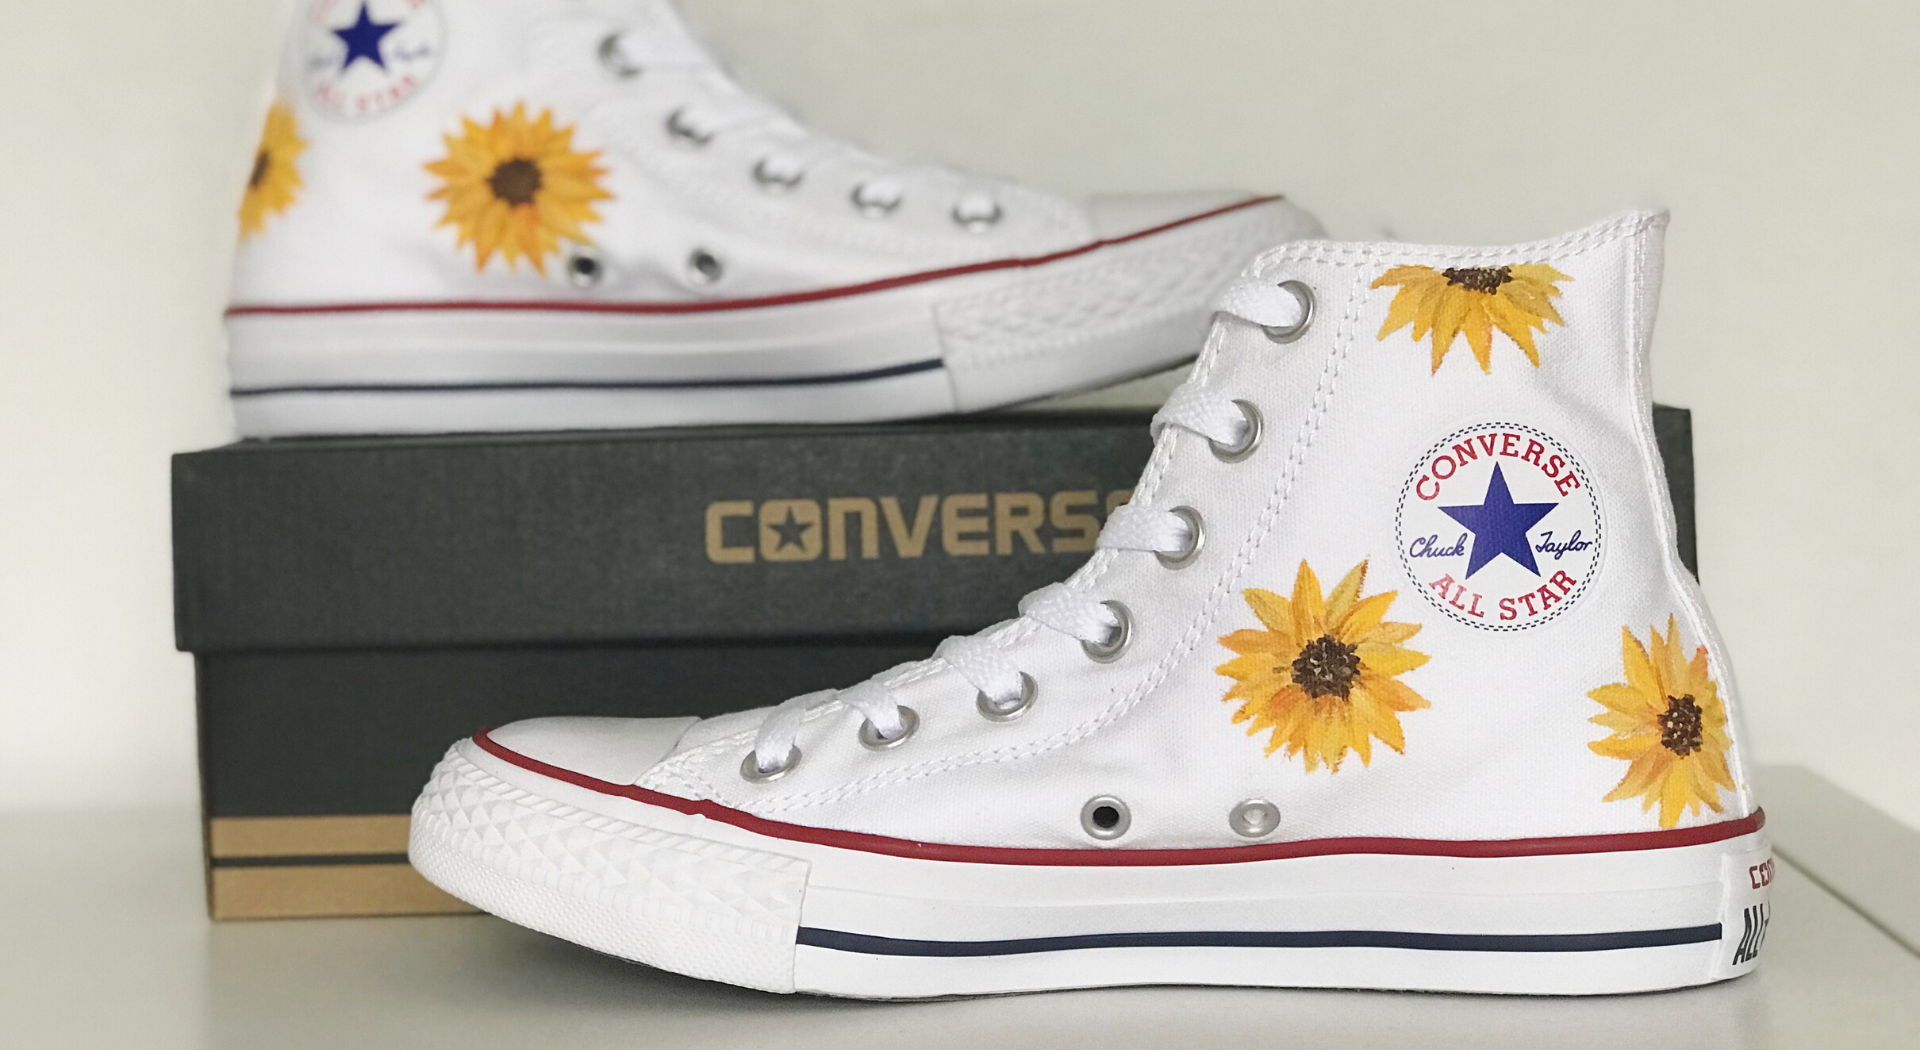 How To Paint Shoes In 5 Easy Steps Diy Sunflower Shoes The Beauty Of Traveling